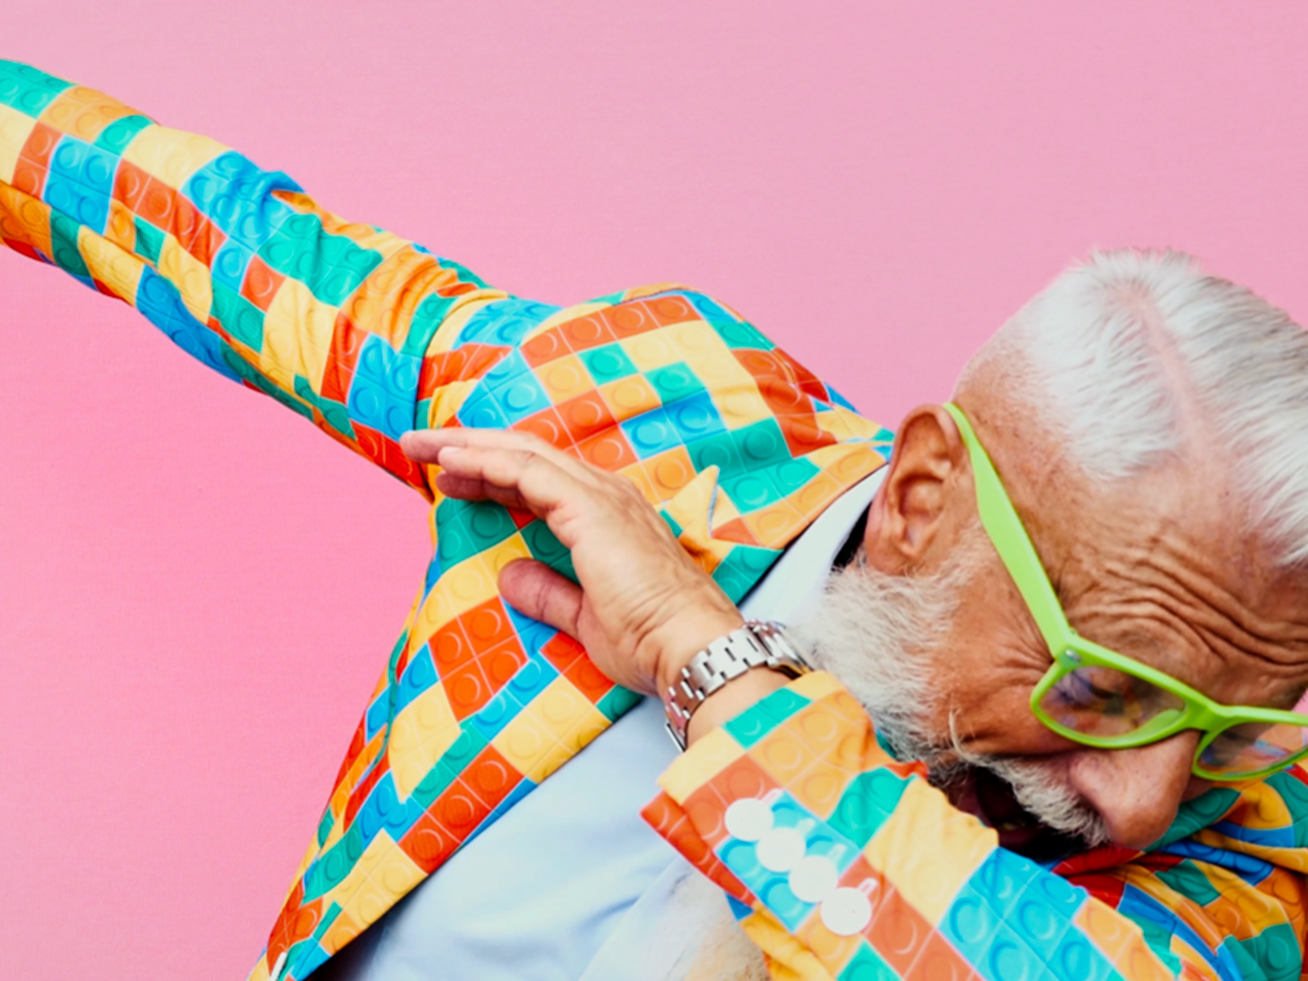 An old man who is wearing a colorful outfit doing the dab